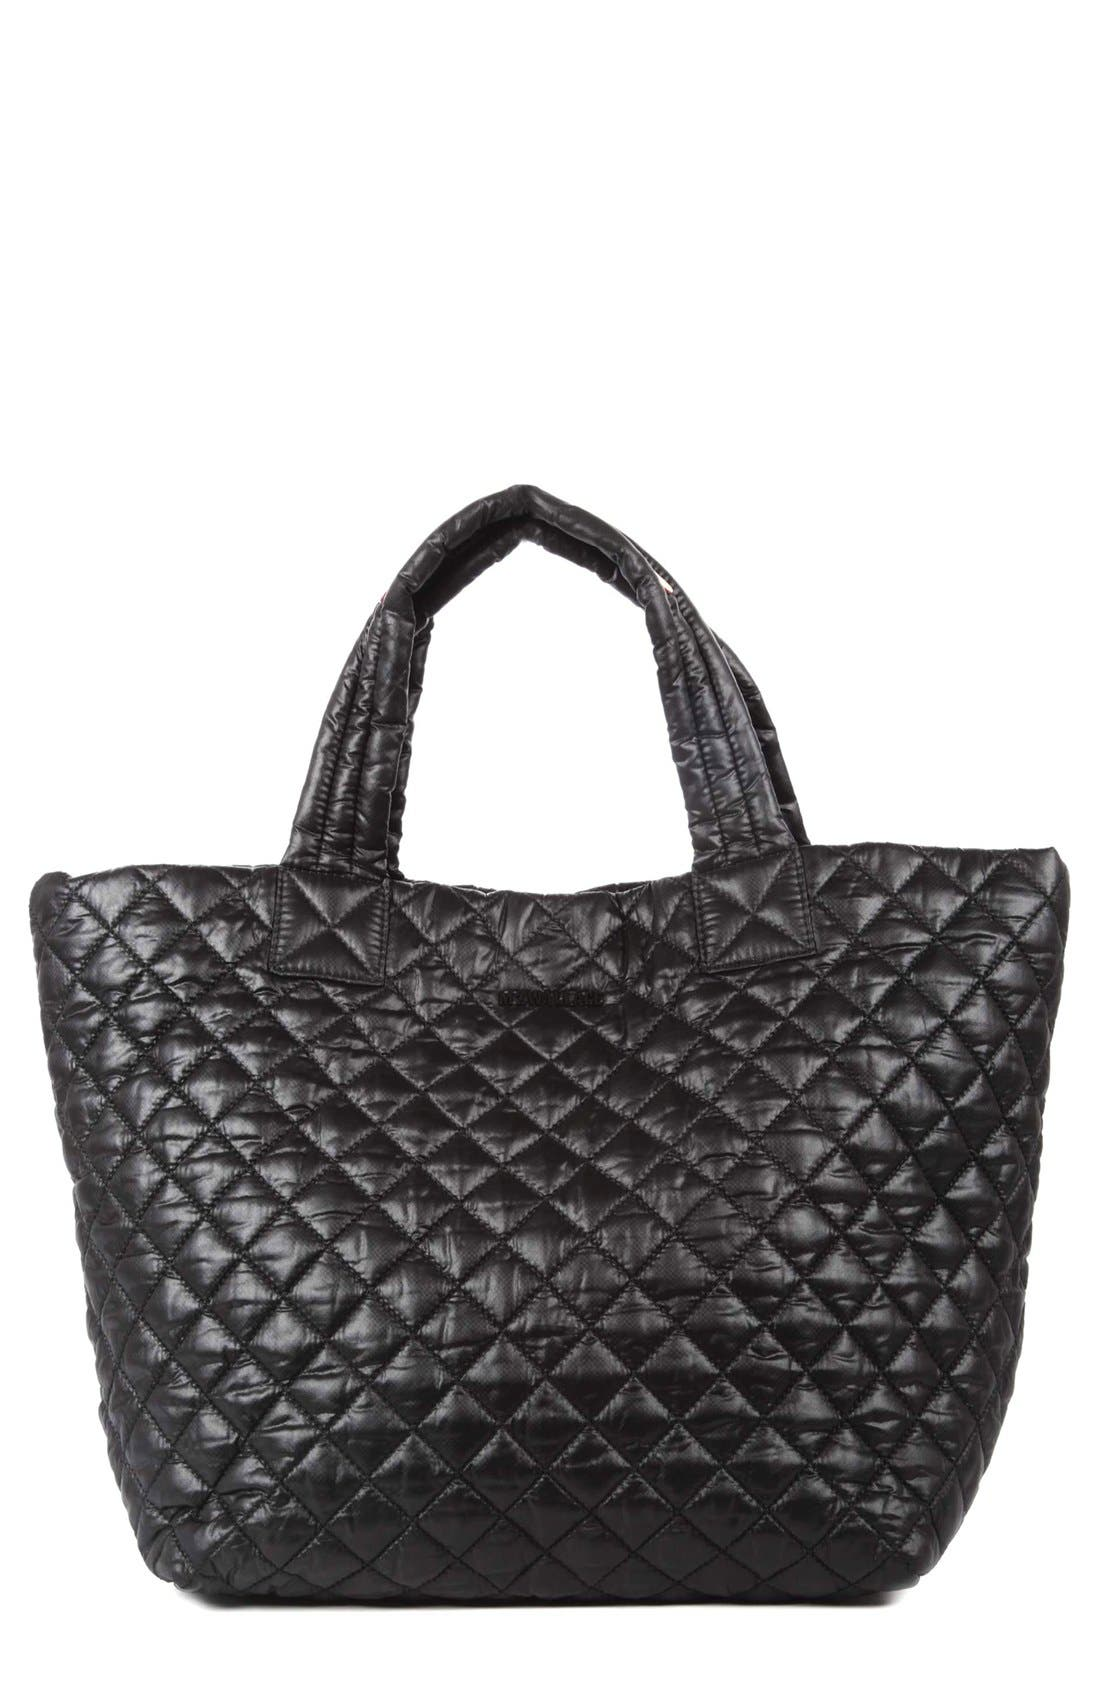 Main Image - MZ Wallace 'Small Metro' Quilted Oxford Nylon Tote